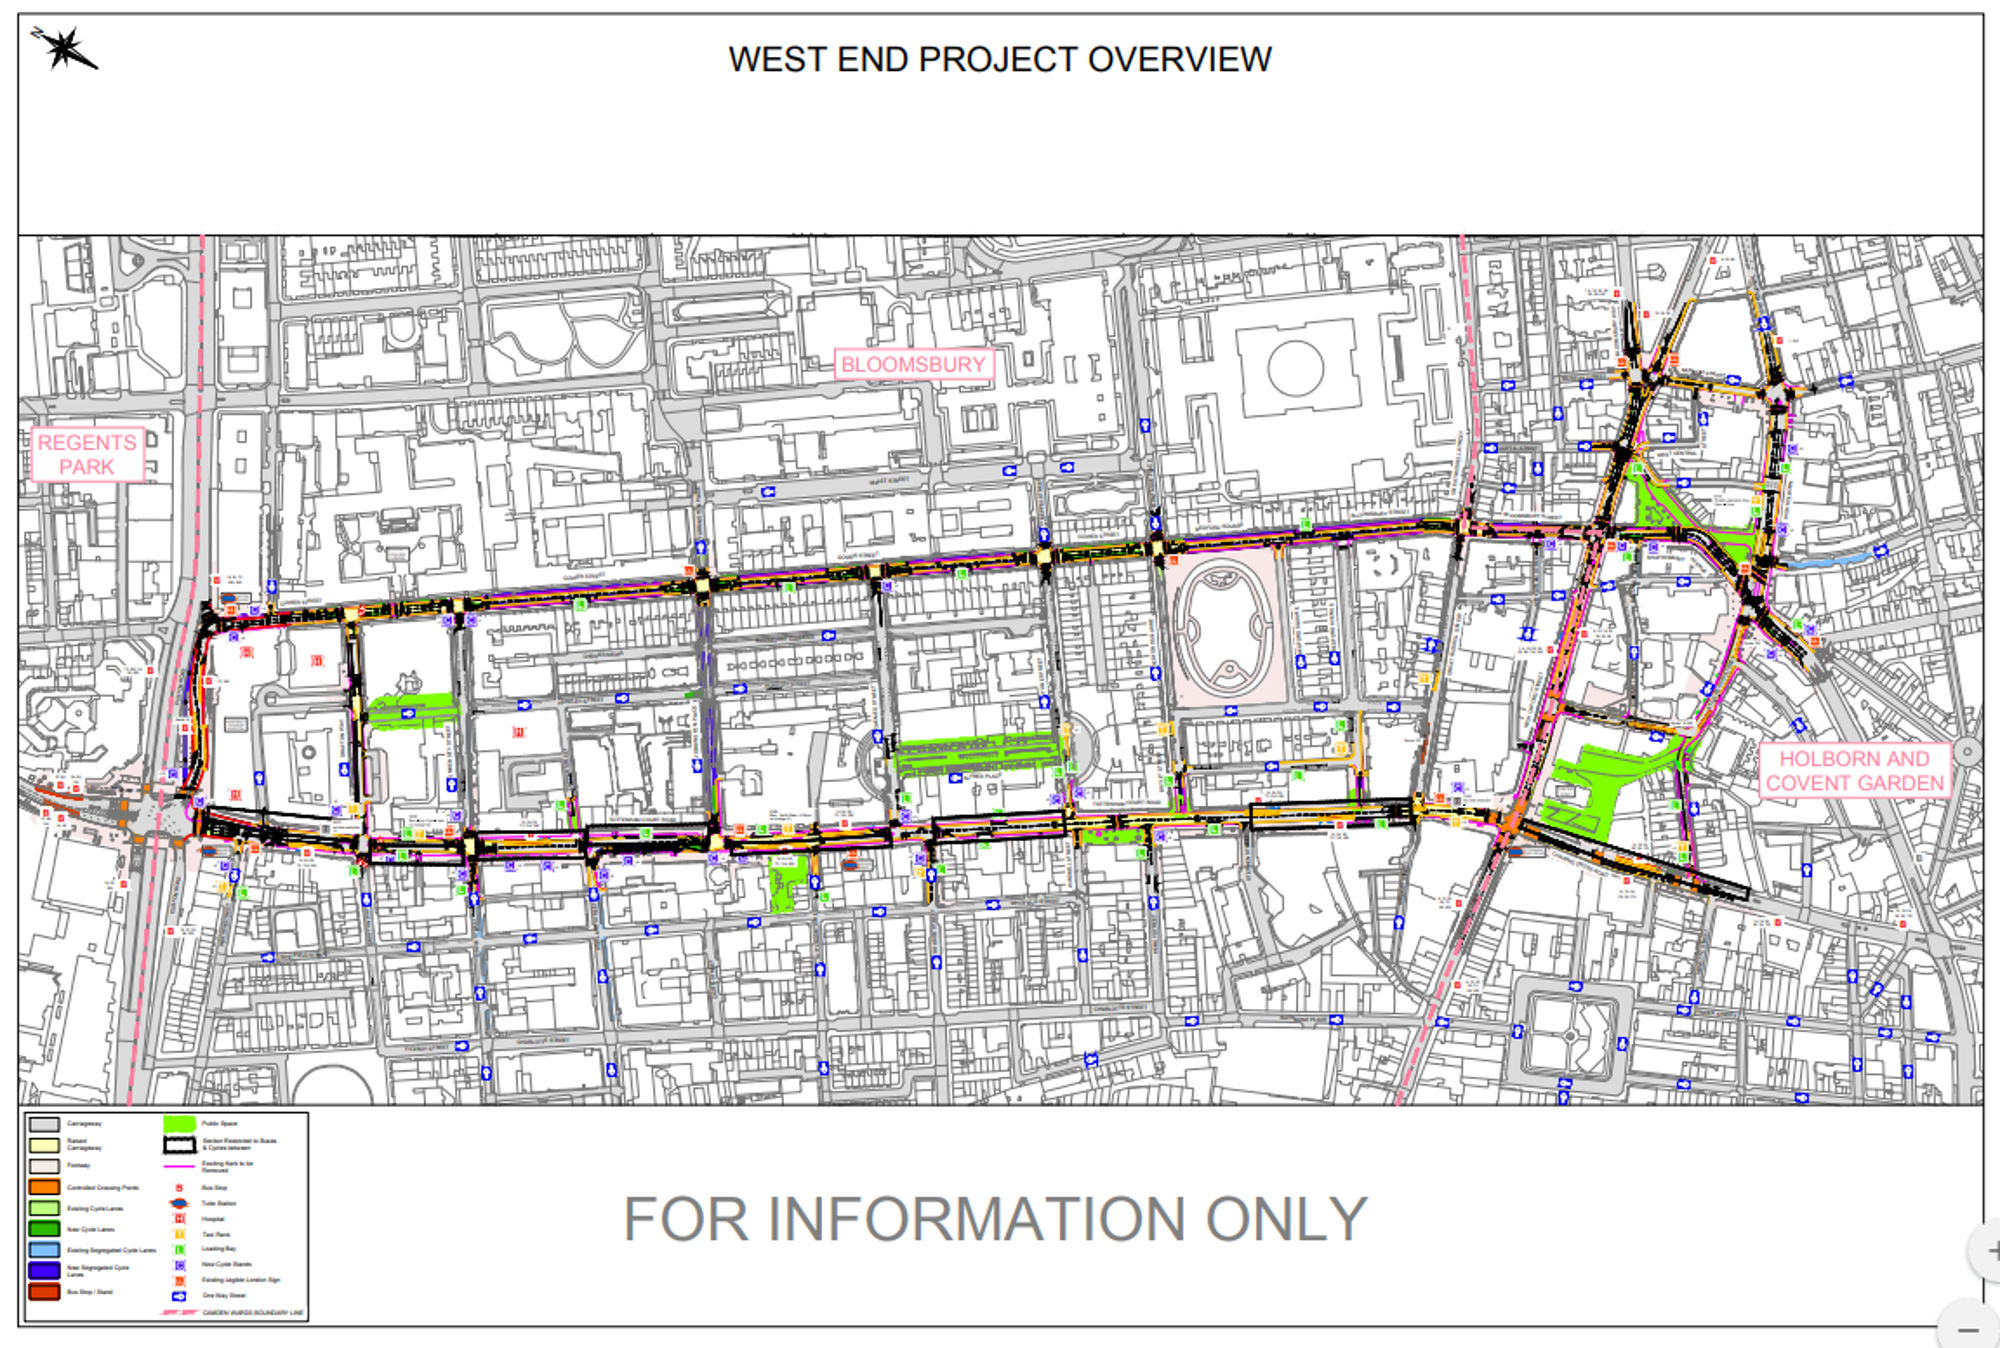 Map showing overview of West End Project.